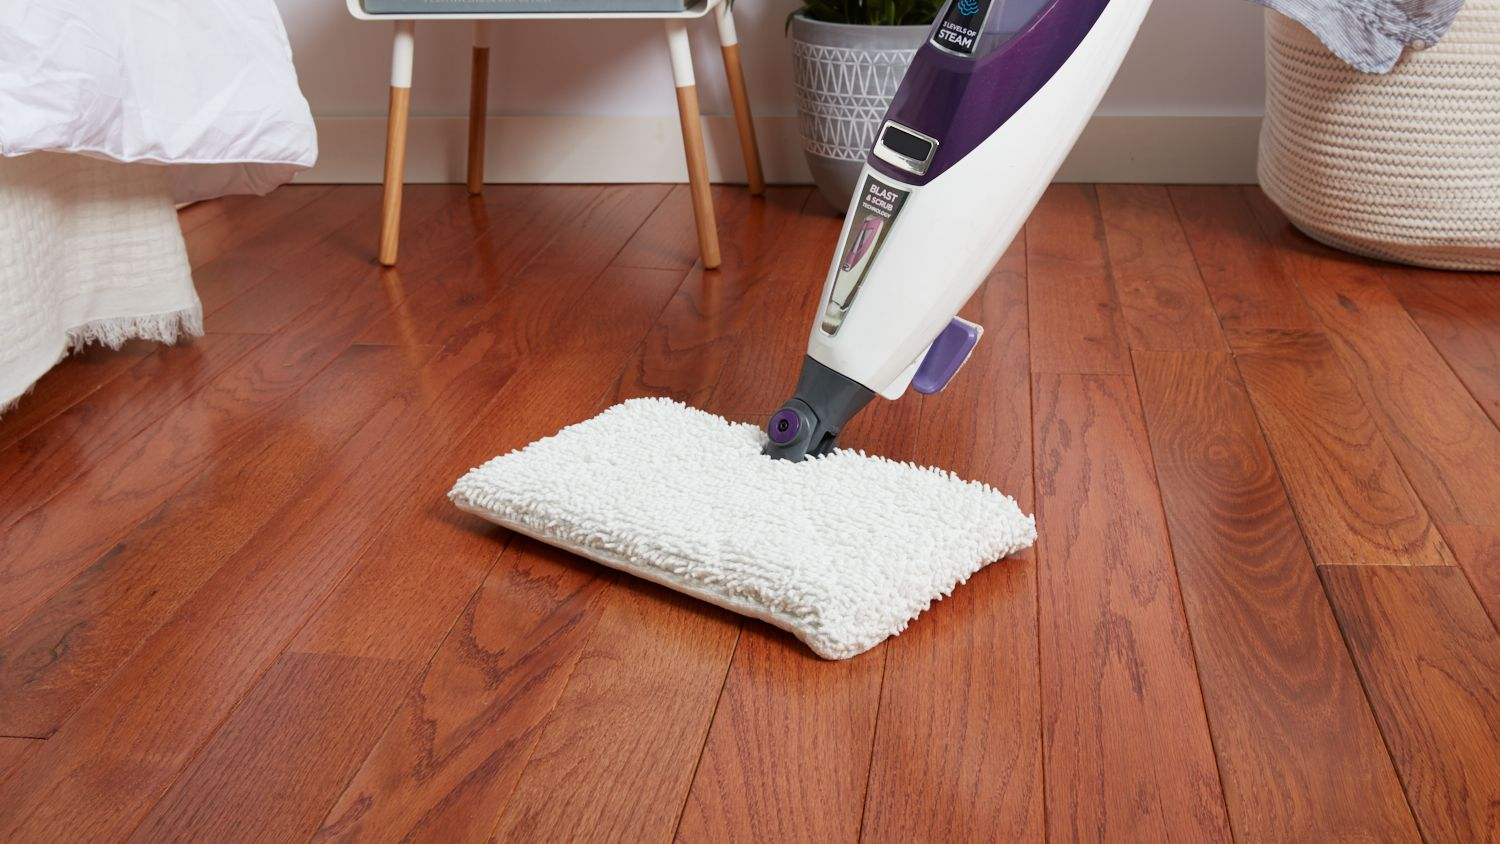 How To Steam Clean Hardwood Flooring